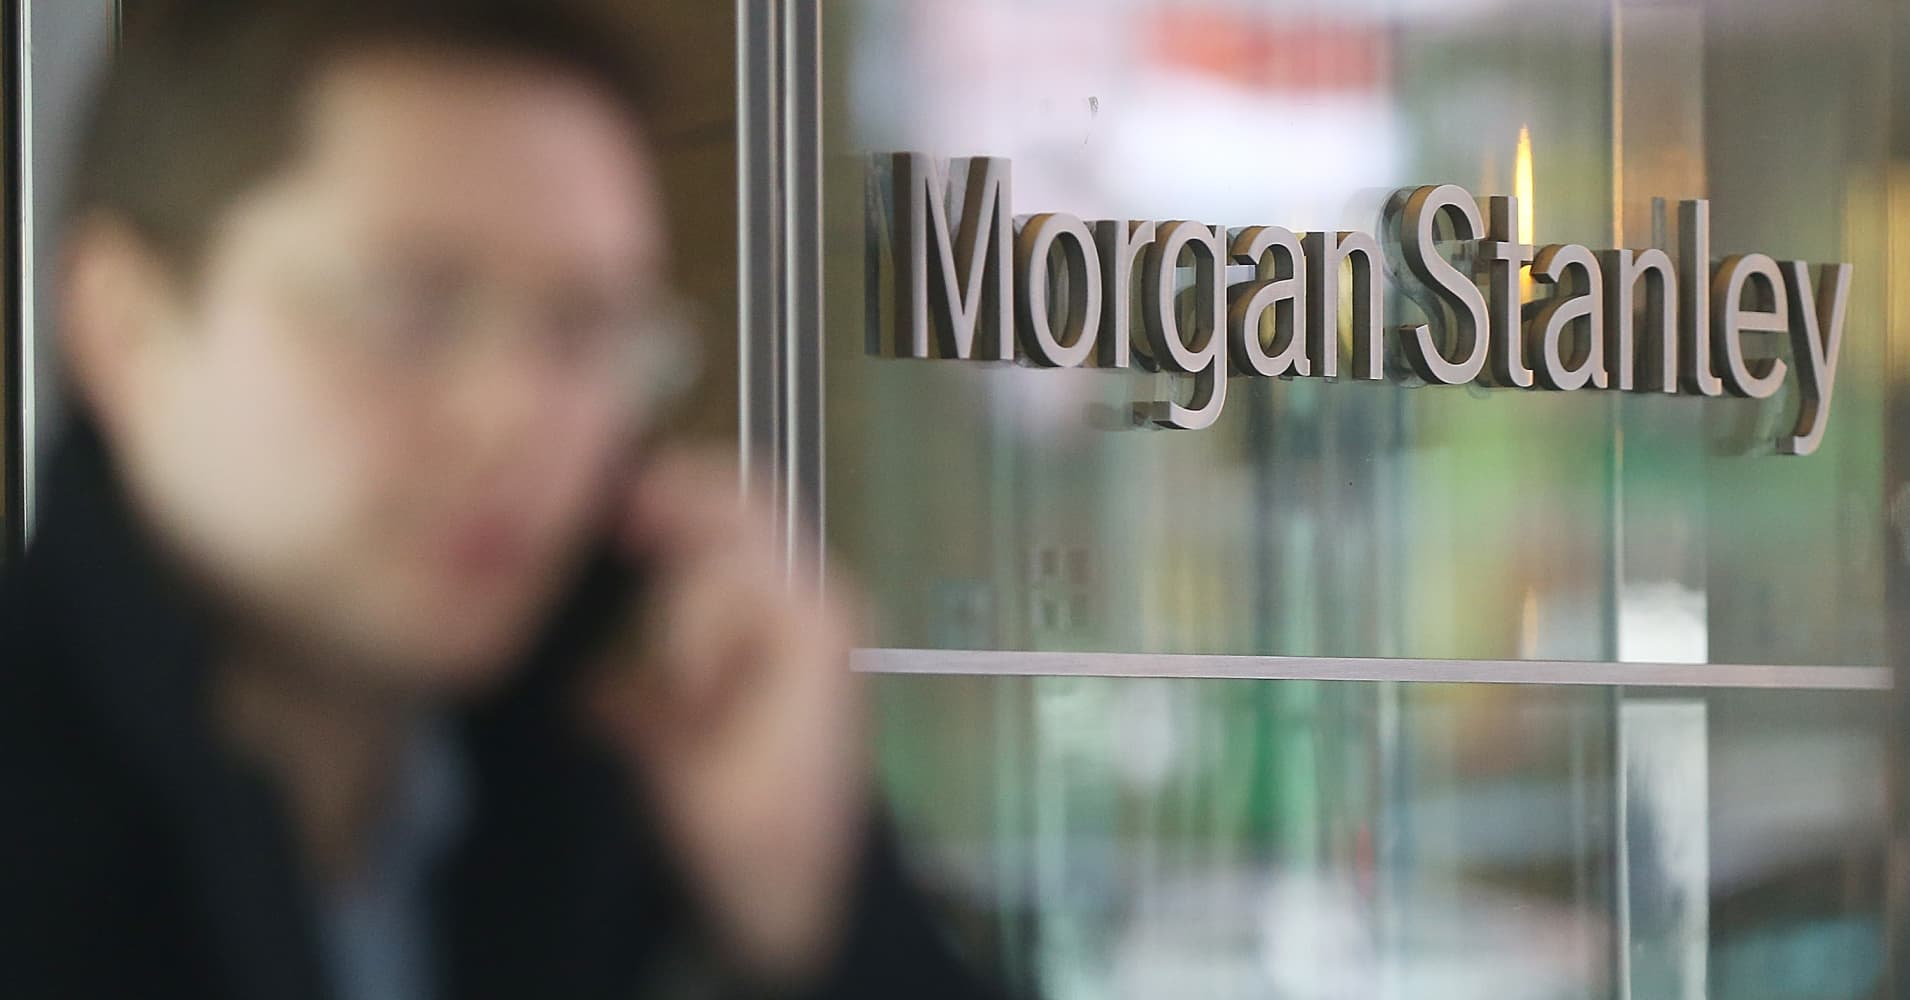 Morgan Stanley gearing up for bitcoin derivative trading, Bloomberg reports